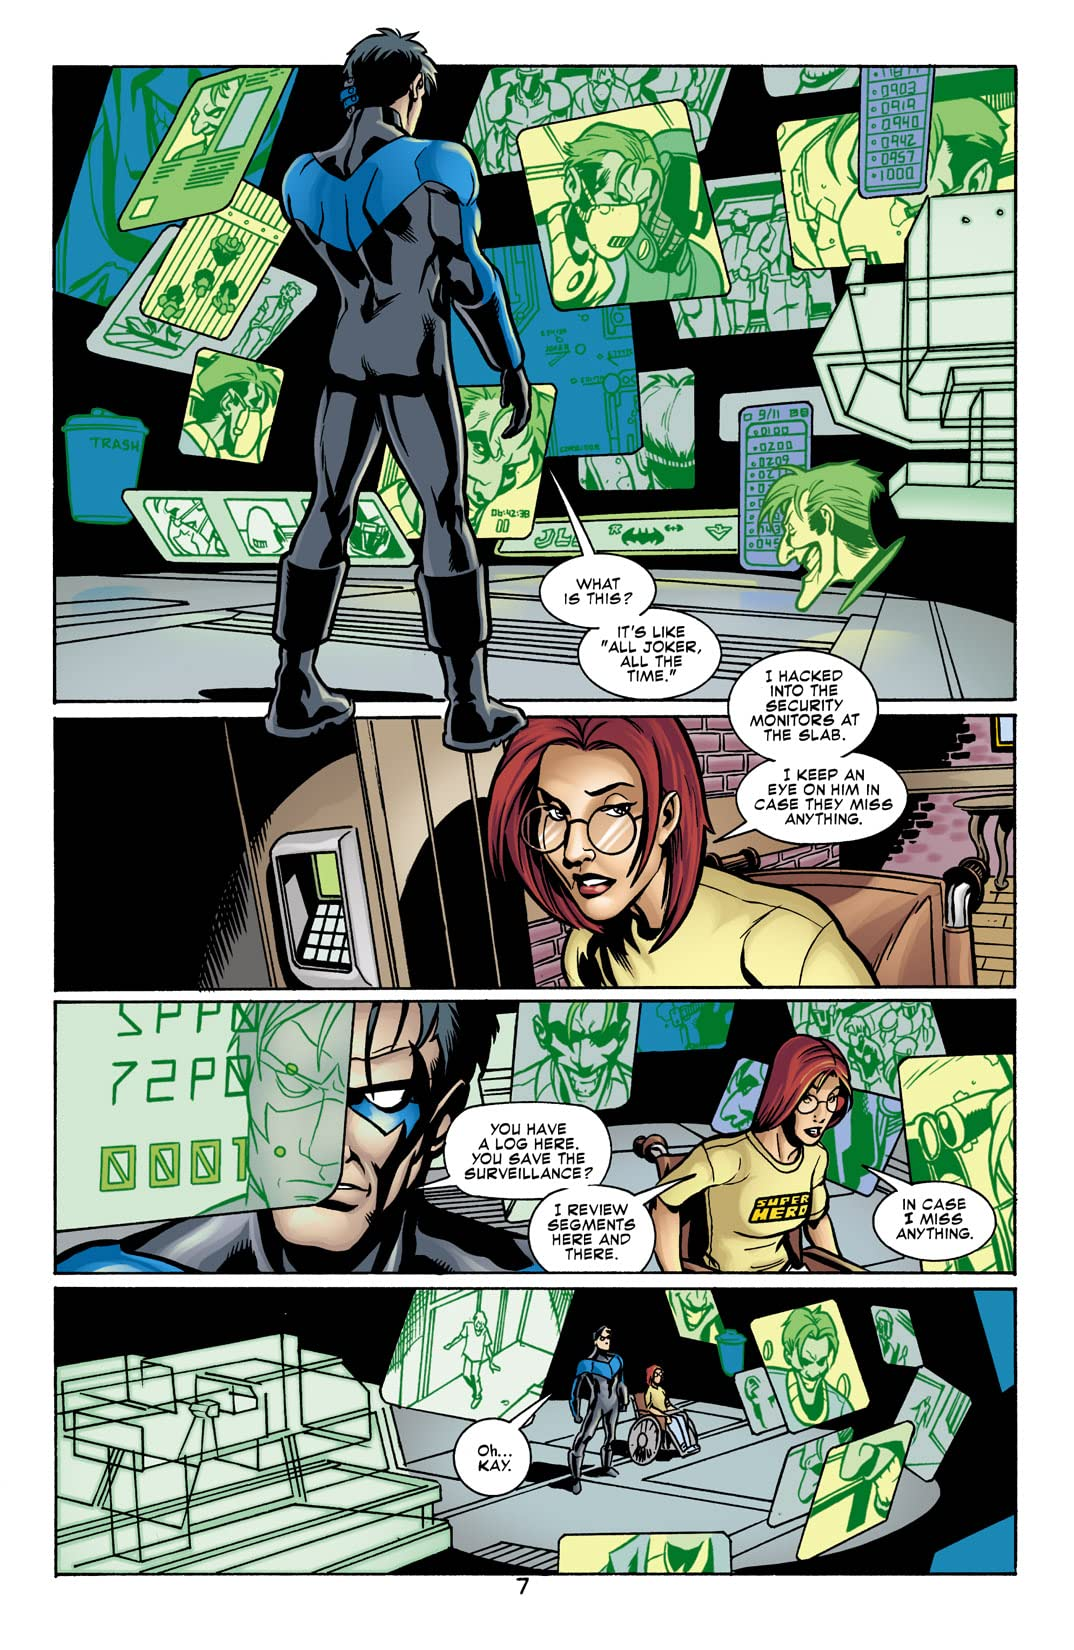 Joker: Secret Files & Origins #1: Last Laugh